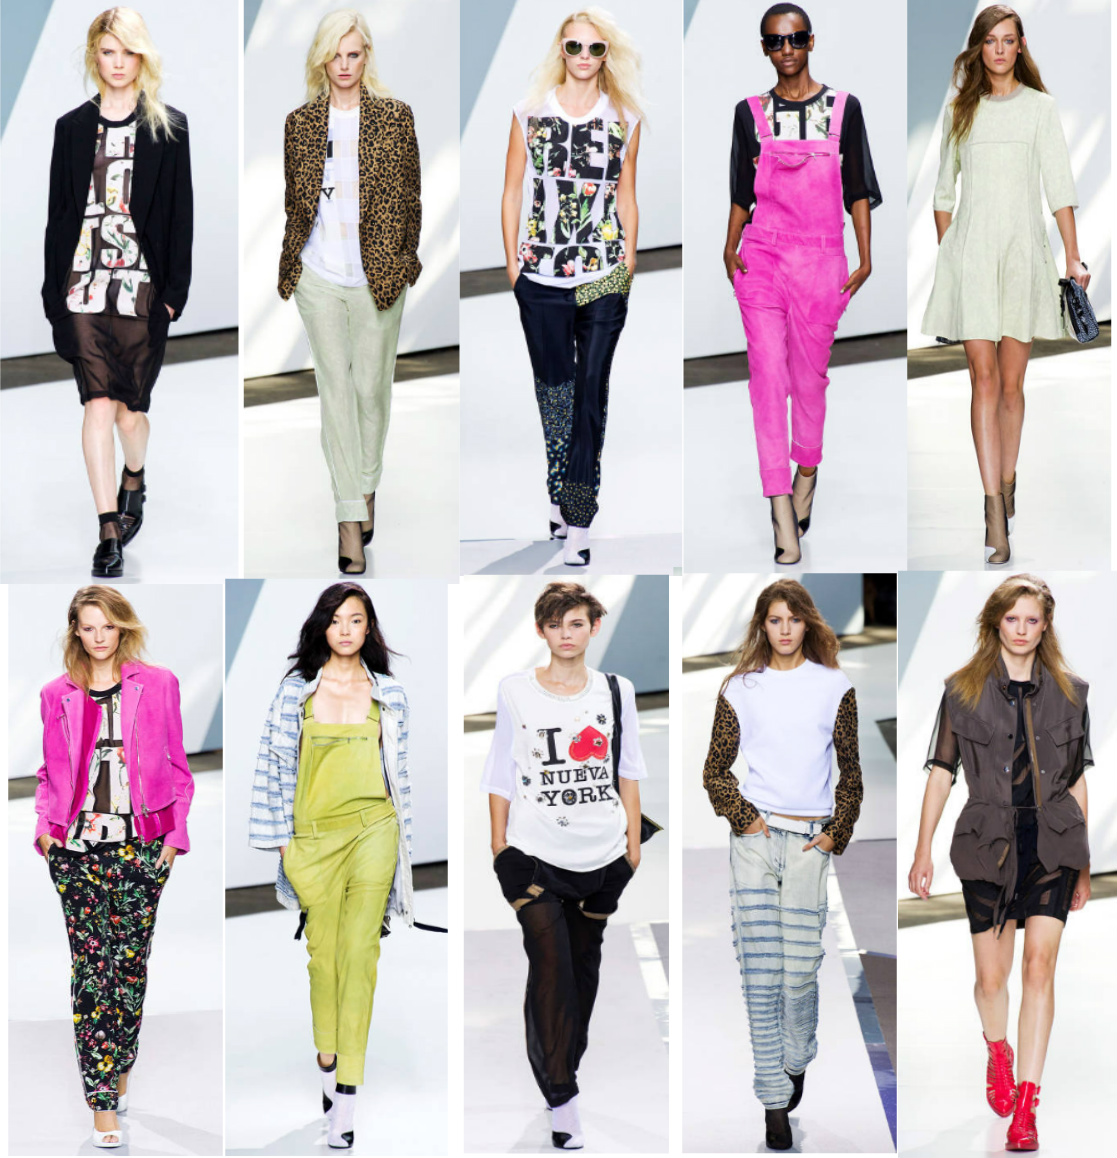 Fashions Upgrade: Fashion Trends 2013 Wallpapers